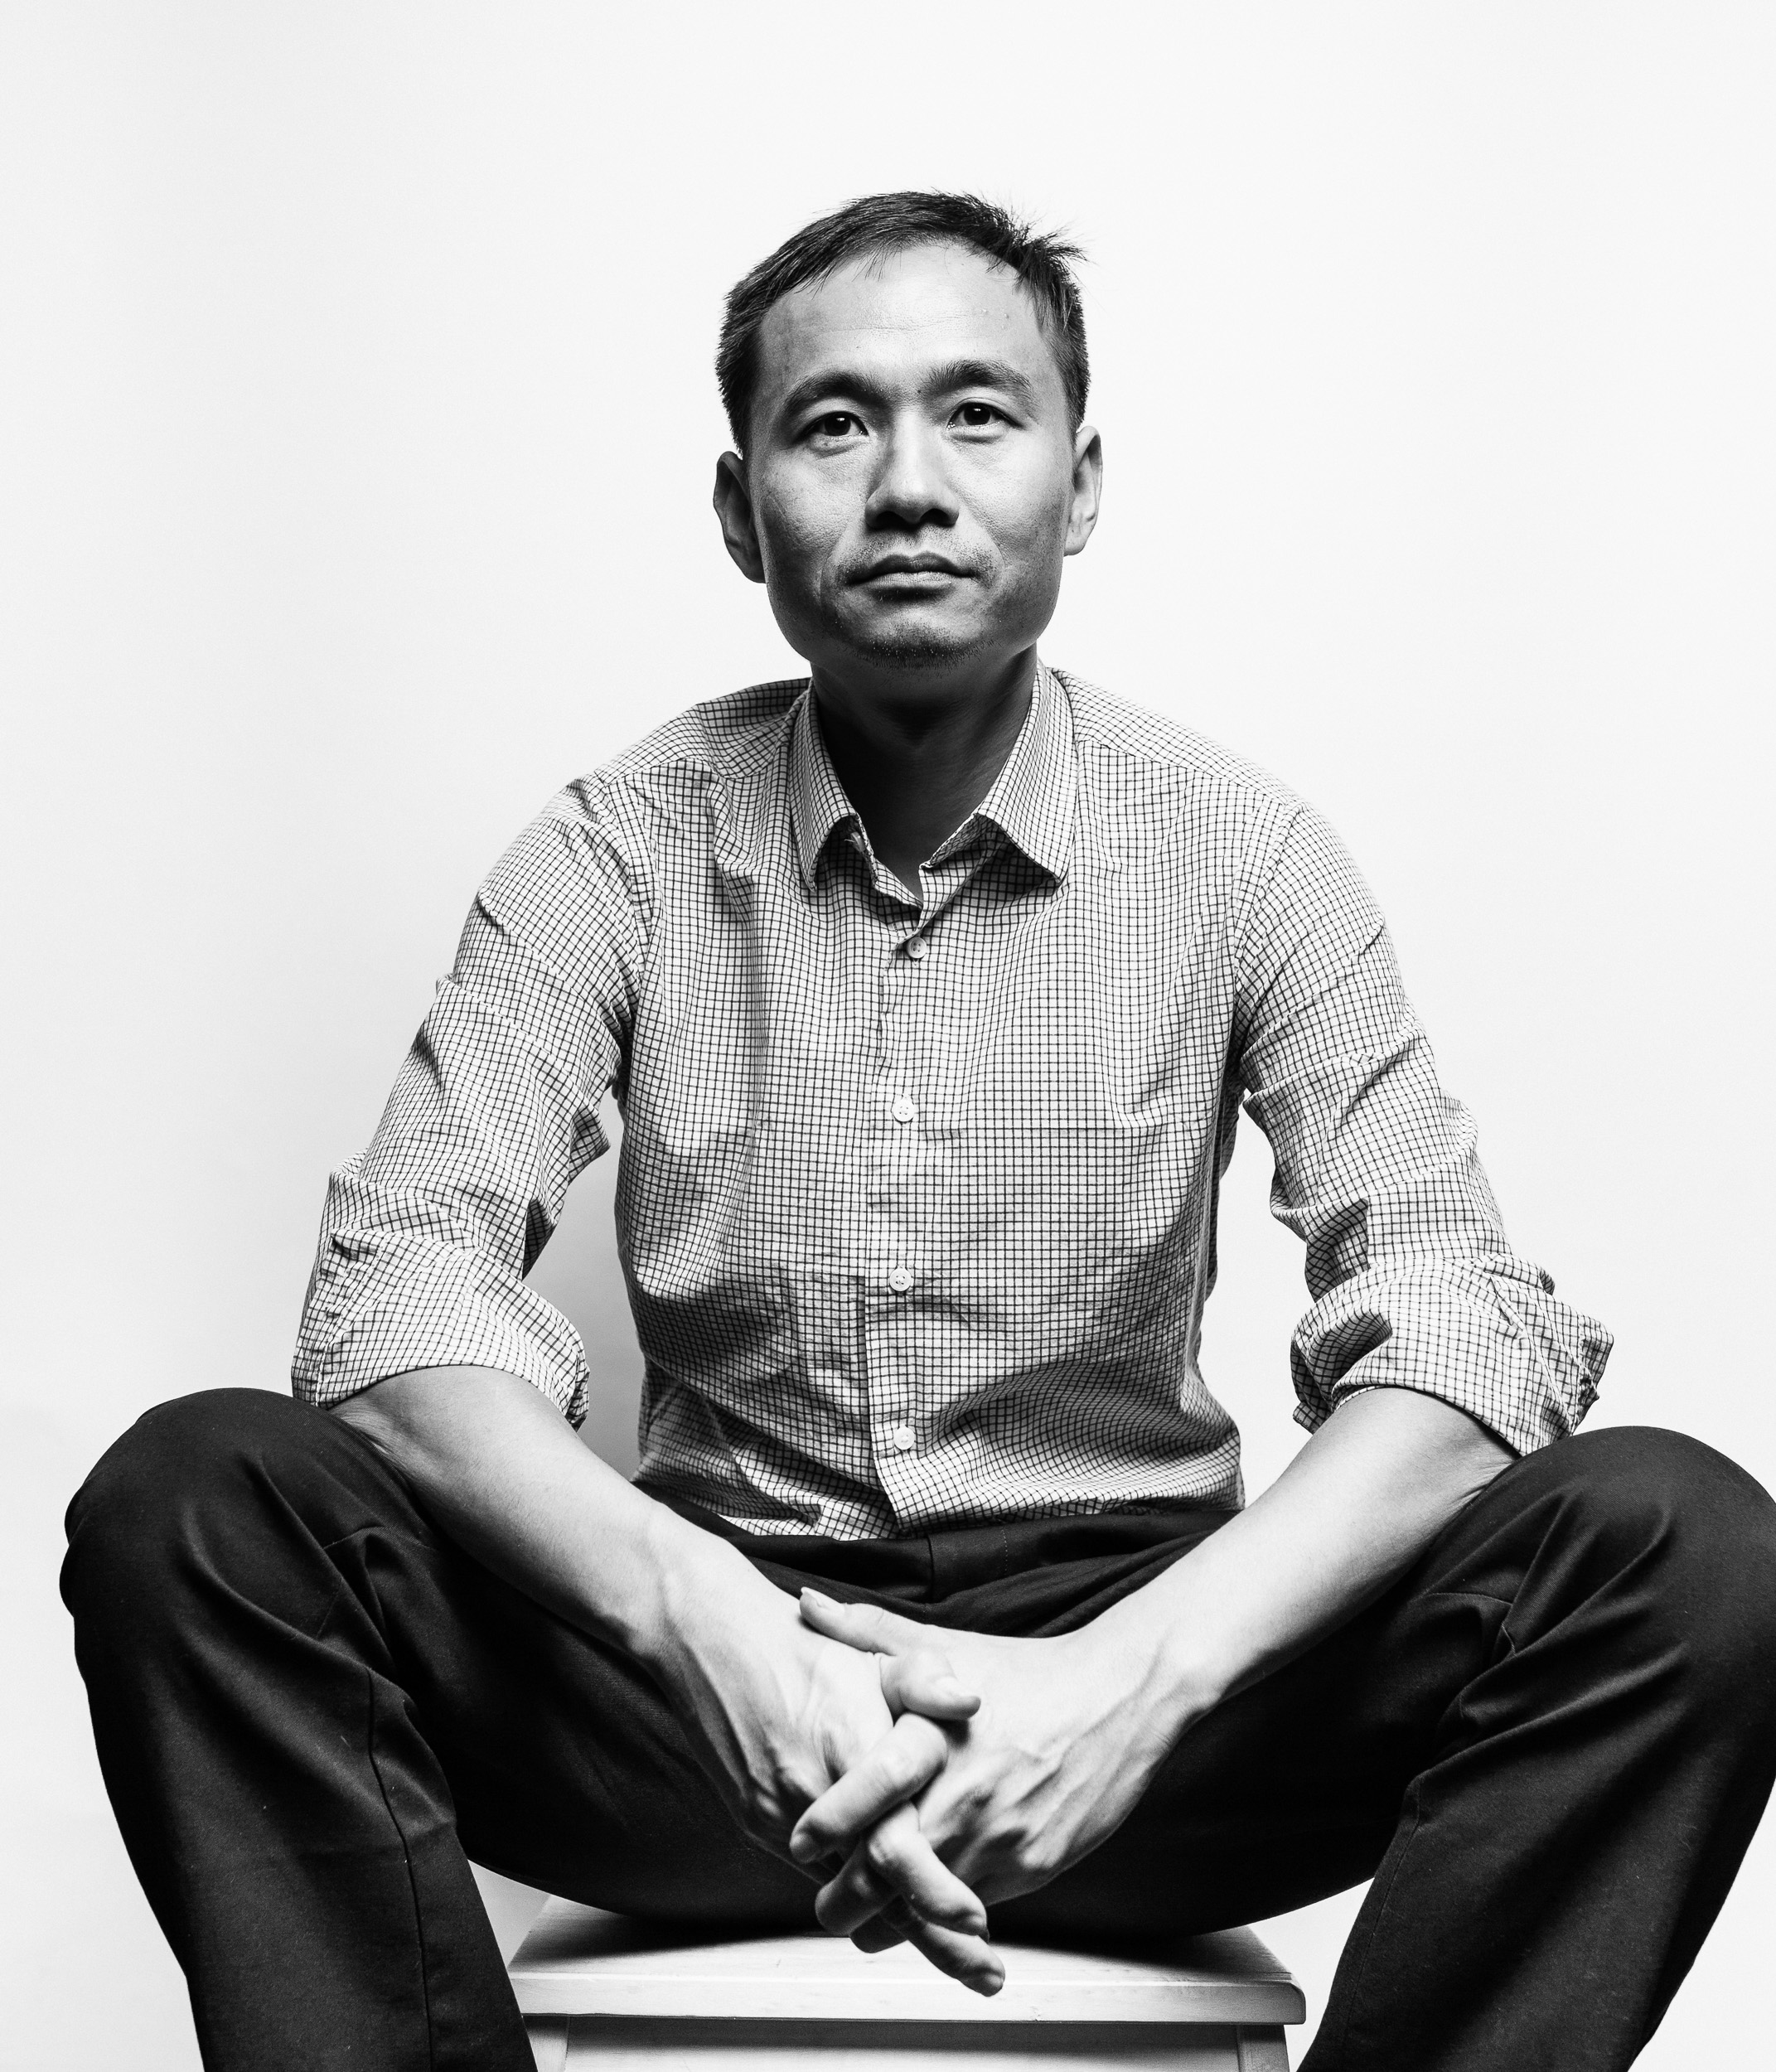 singapore-commercial-editorial-photographer-journalism-asia-ajf-37.jpg